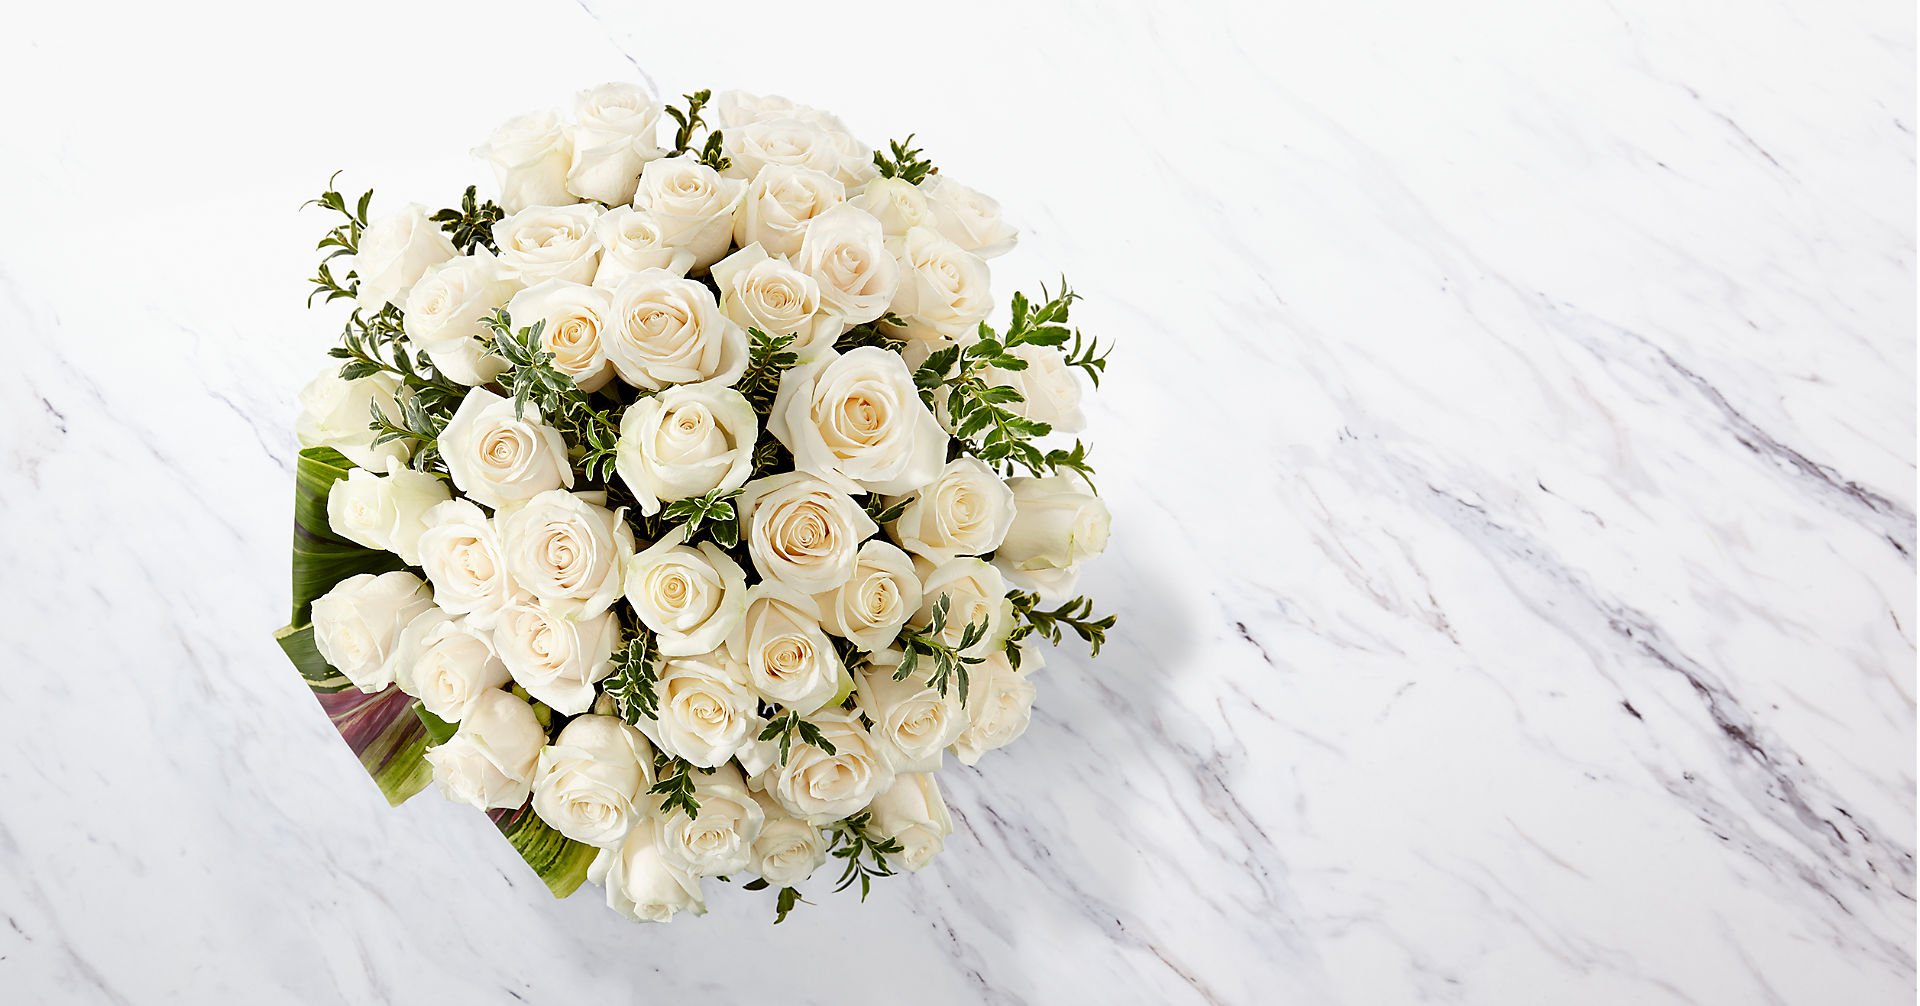 Clarity Luxury Rose Bouquet - 24-inch Premium Long-Stemmed Roses - Image 2 Of 4